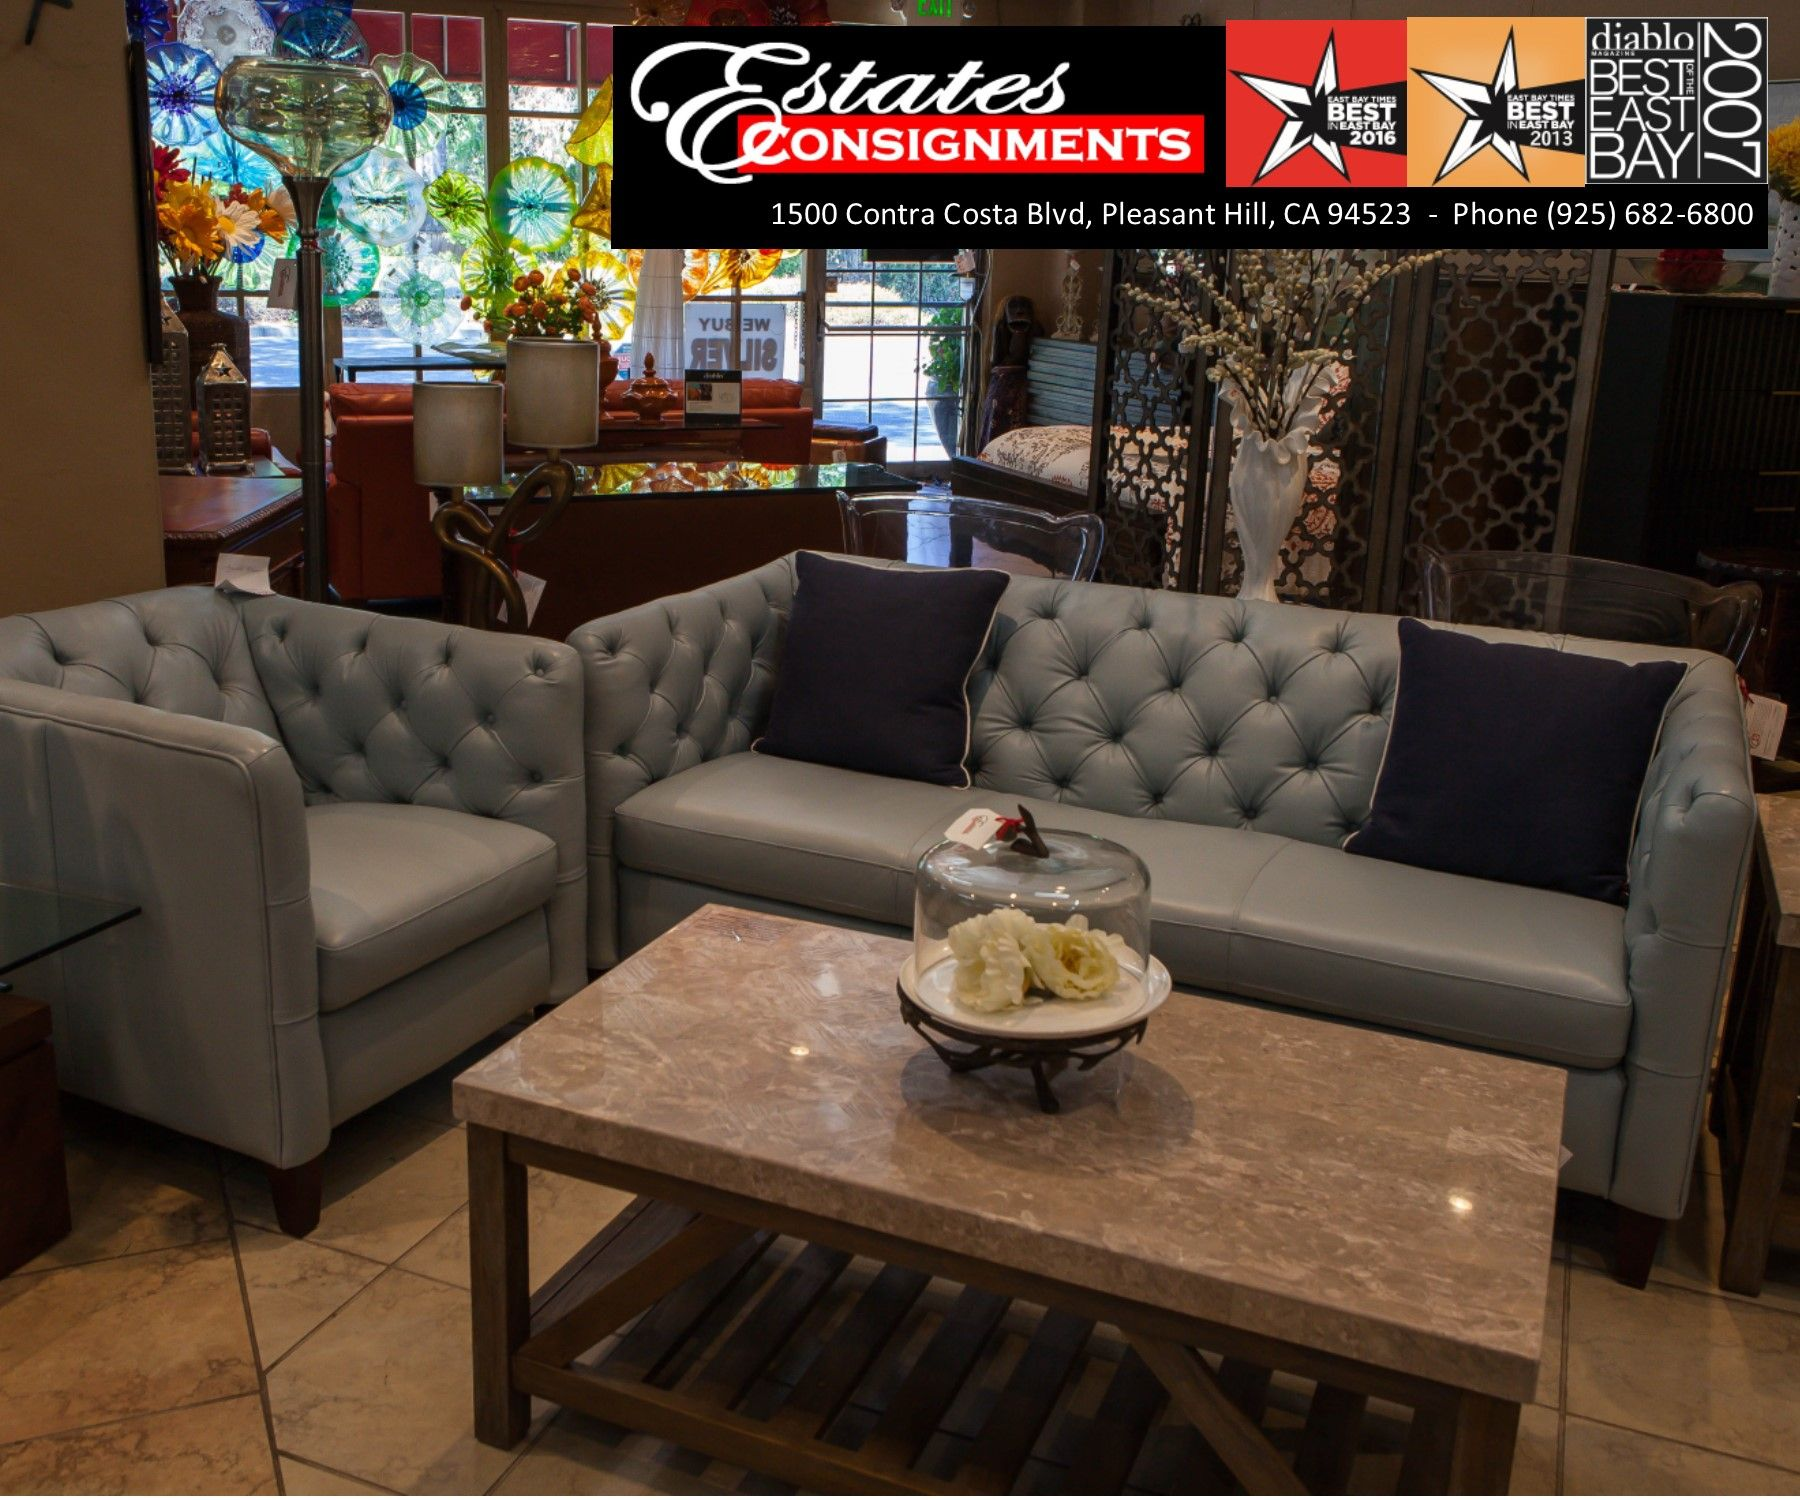 Luxury Leather Sofa Sets From A High End Canadian Manufacturer At Estates Consignments At Below Retail Luxury Leather Sofas Upscale Furniture Leather Sofa Set